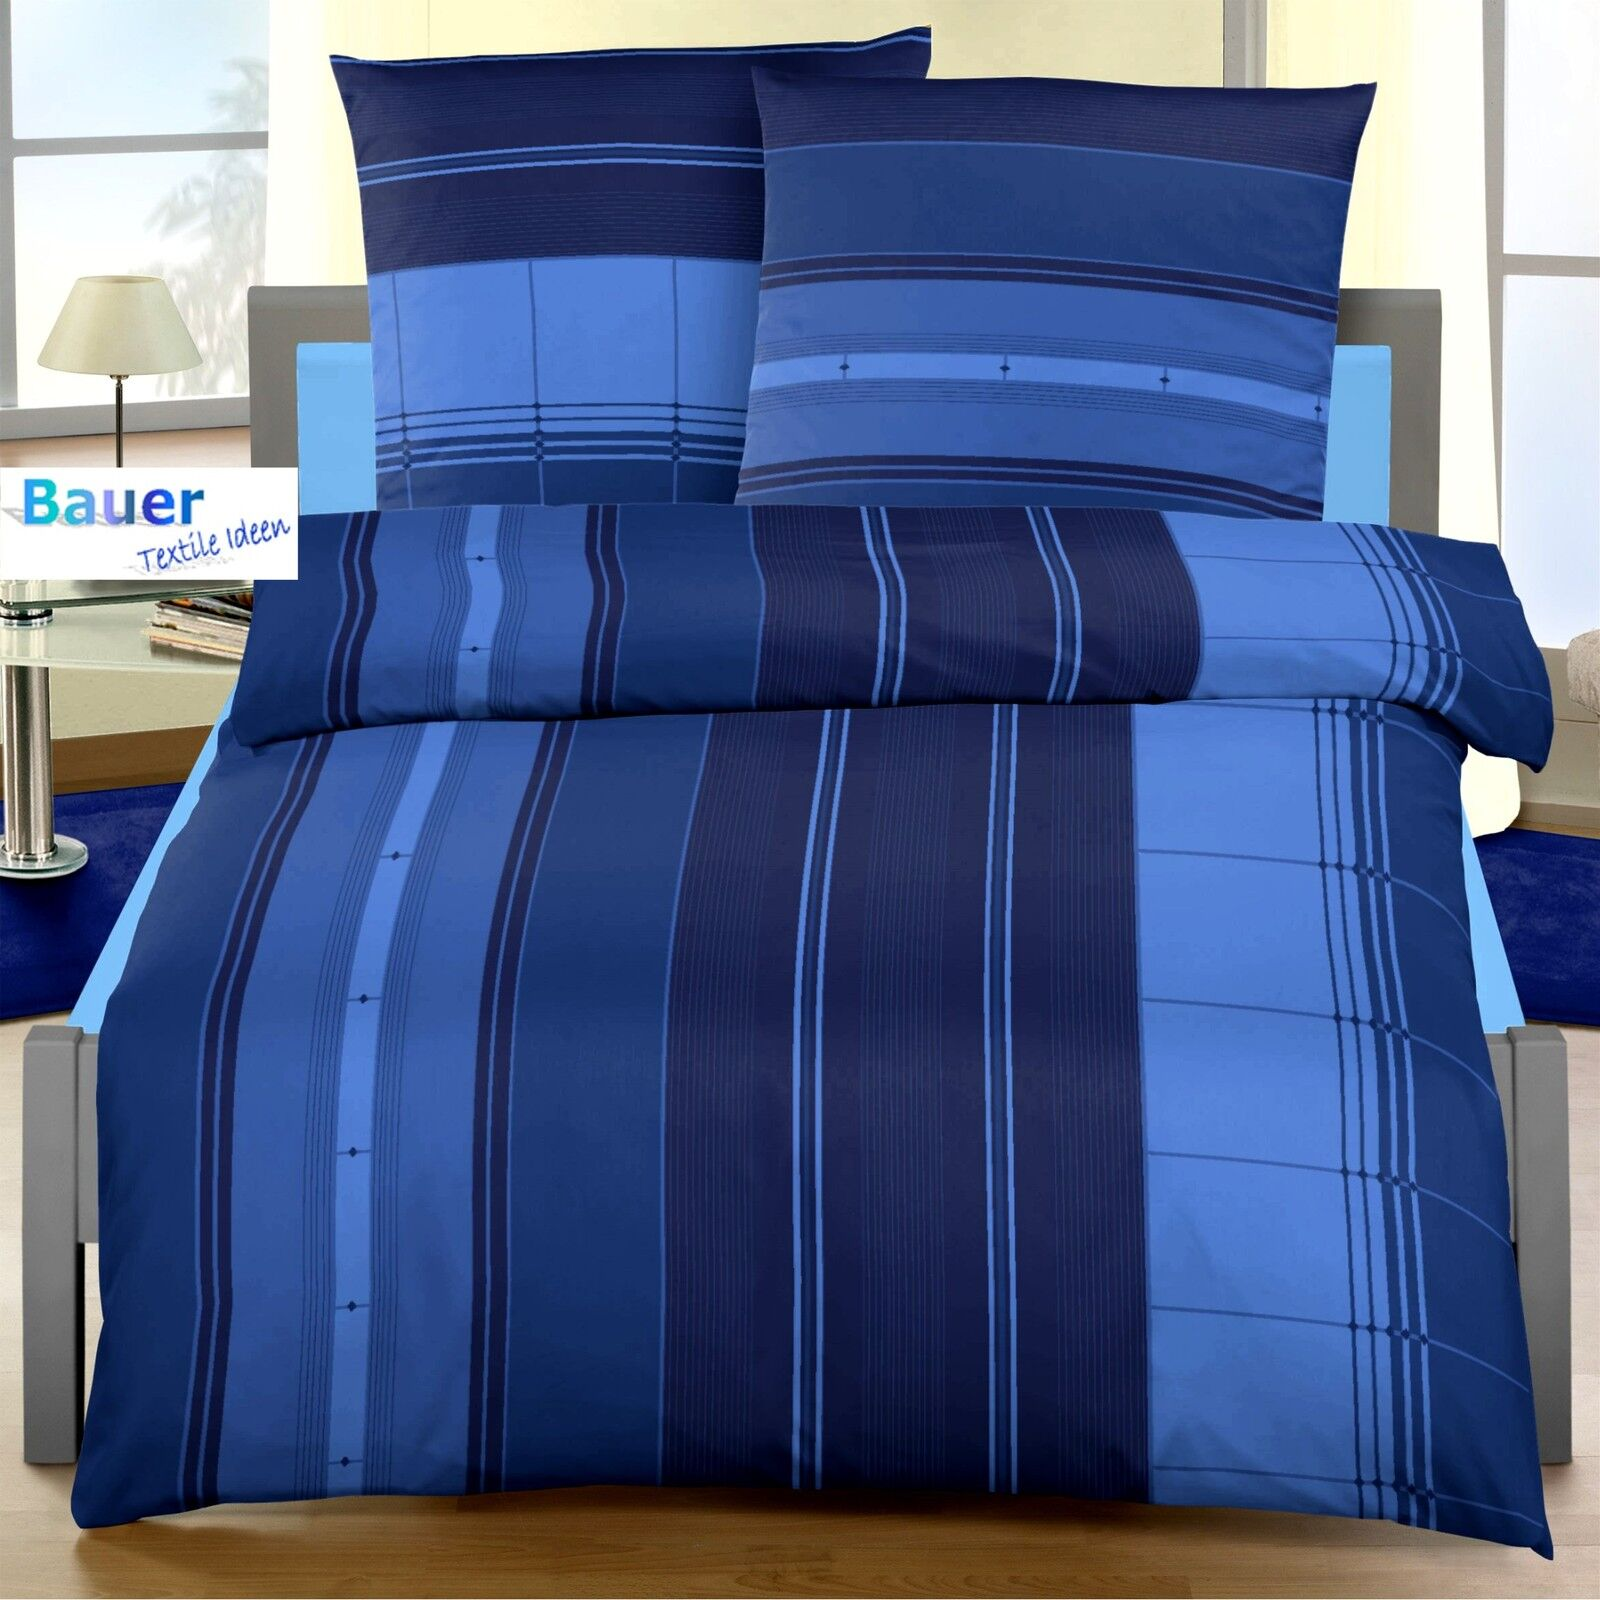 bettw sche 135x200 cm nadelstreifen marine blau 1444 biber eur 20 95 picclick de. Black Bedroom Furniture Sets. Home Design Ideas